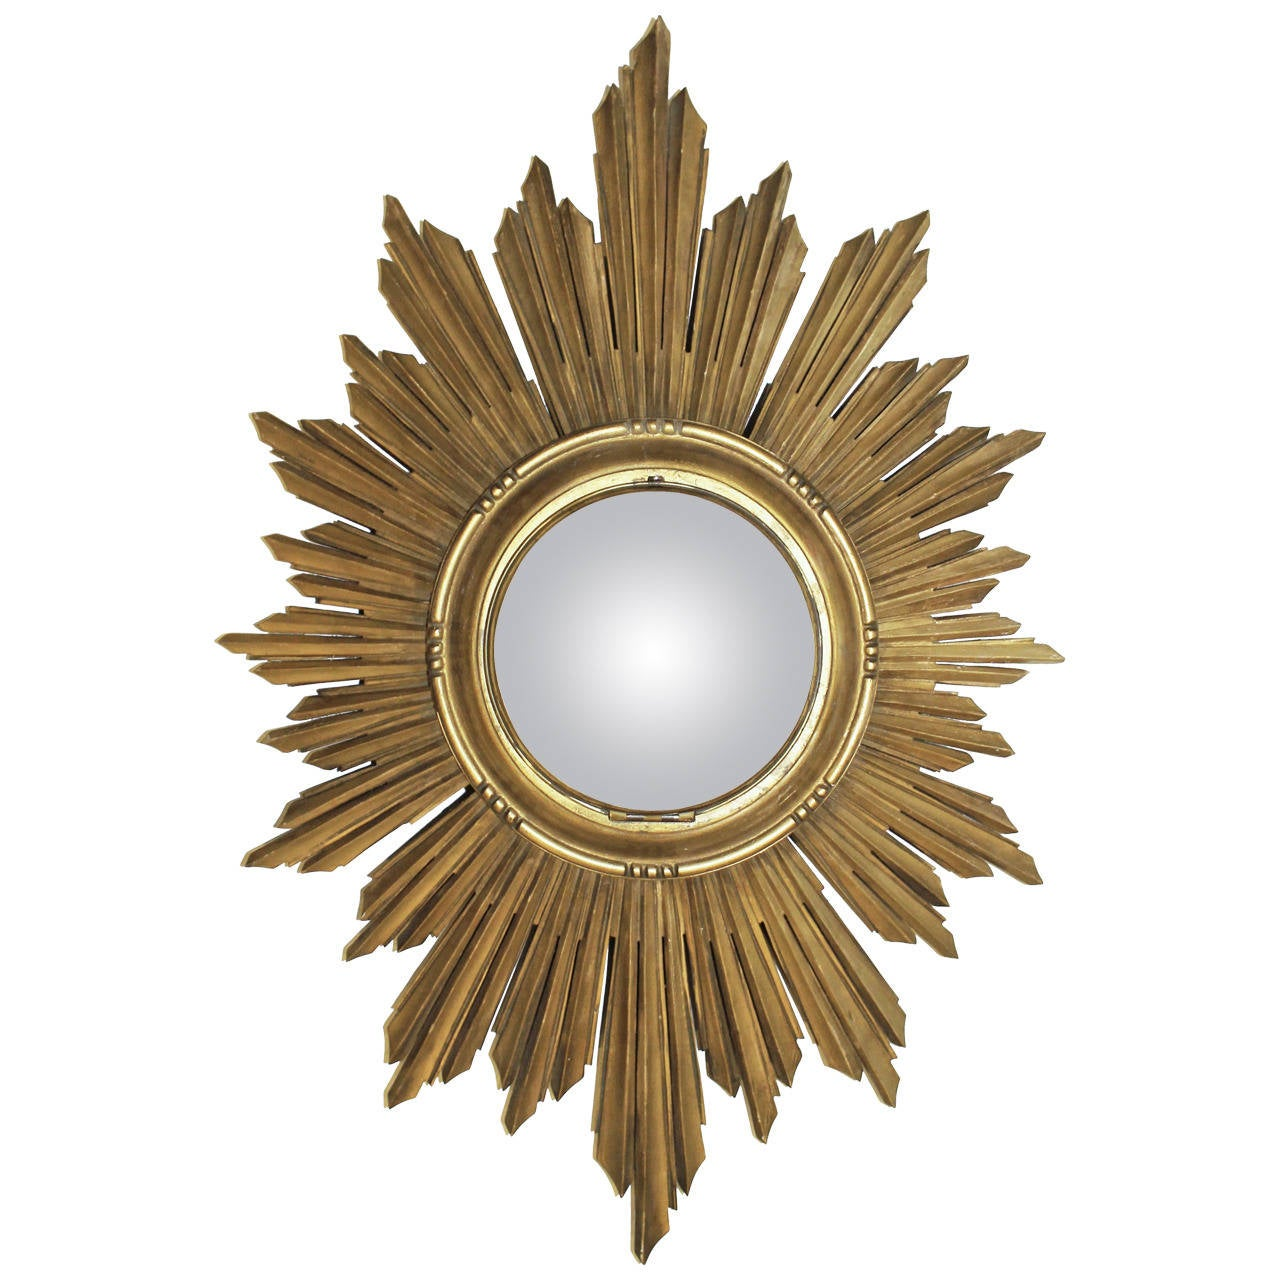 French soleil sunburst giltwood carved wall mirror for for French mirror